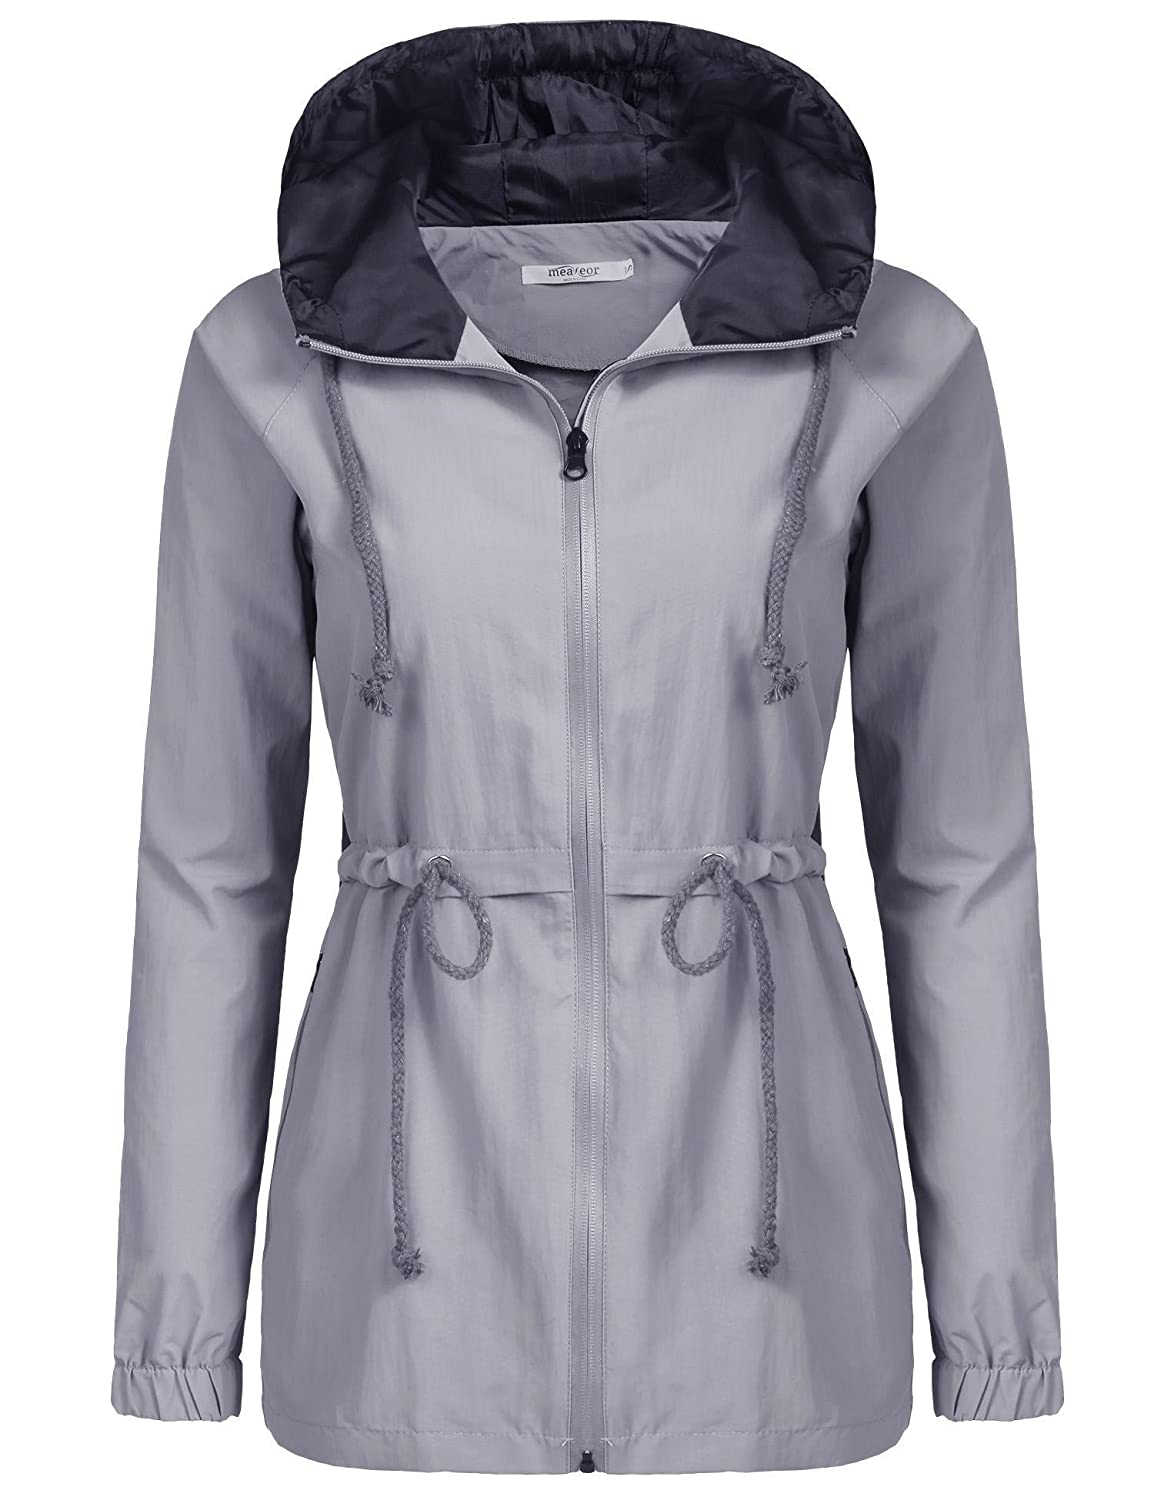 Meaneor impermeabile cappuccio donna manica lunga casual Hooded Jacket